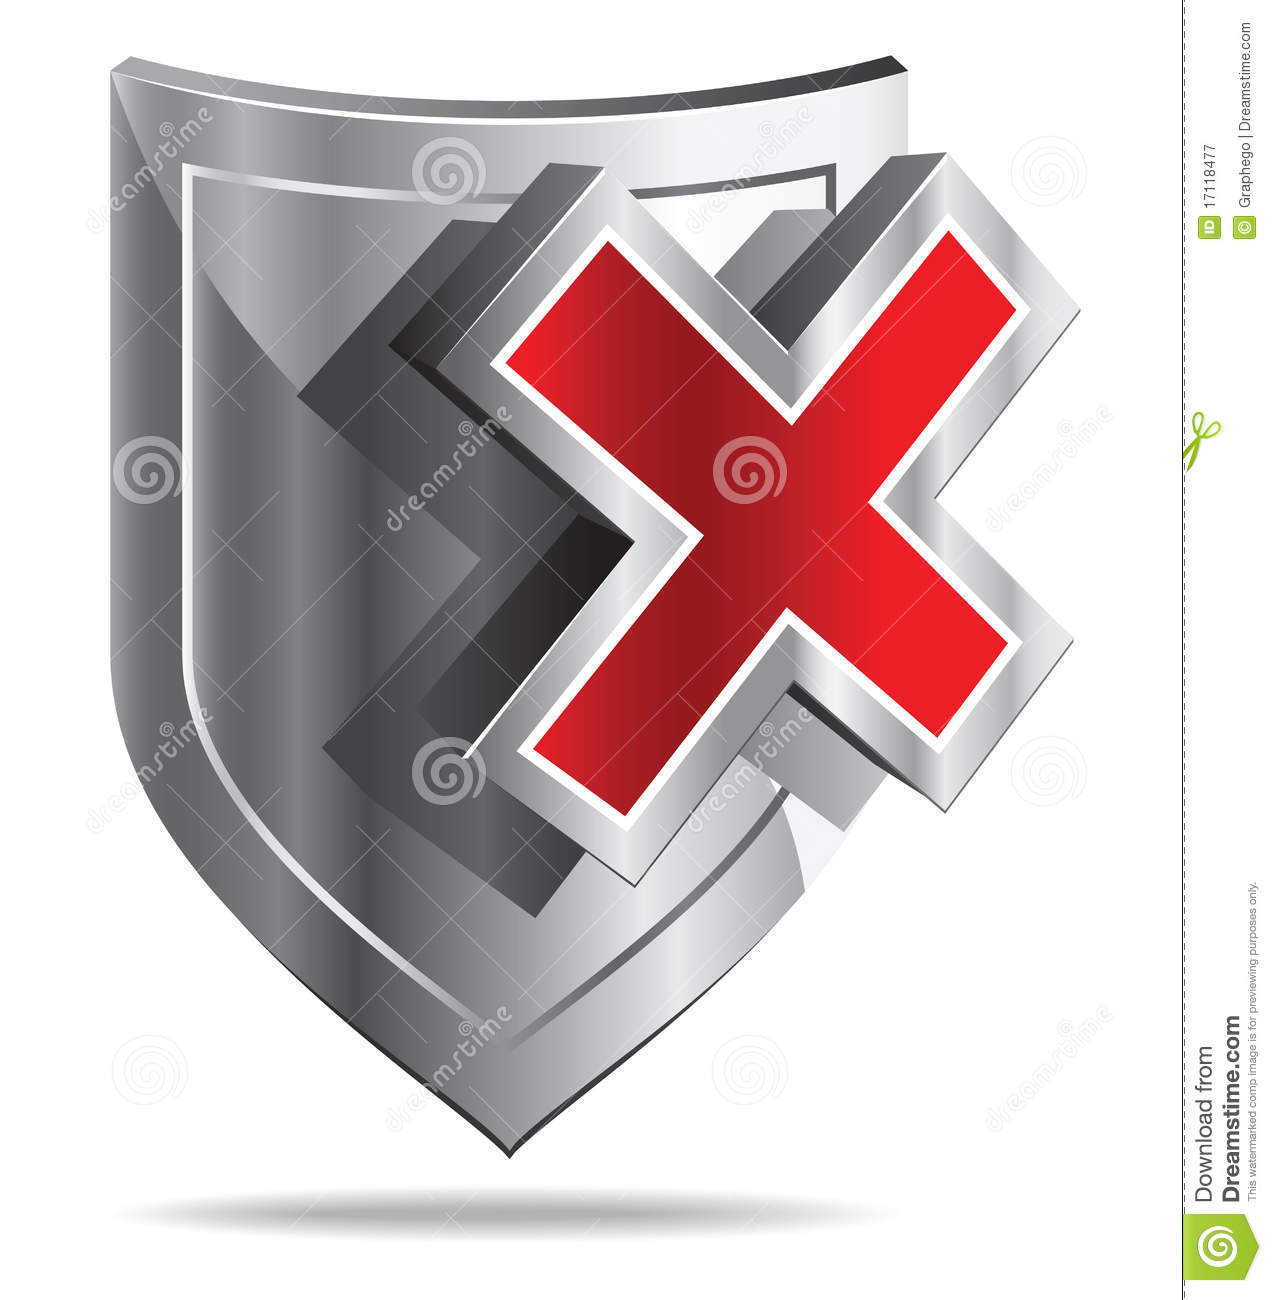 Shield (Protection OFF)